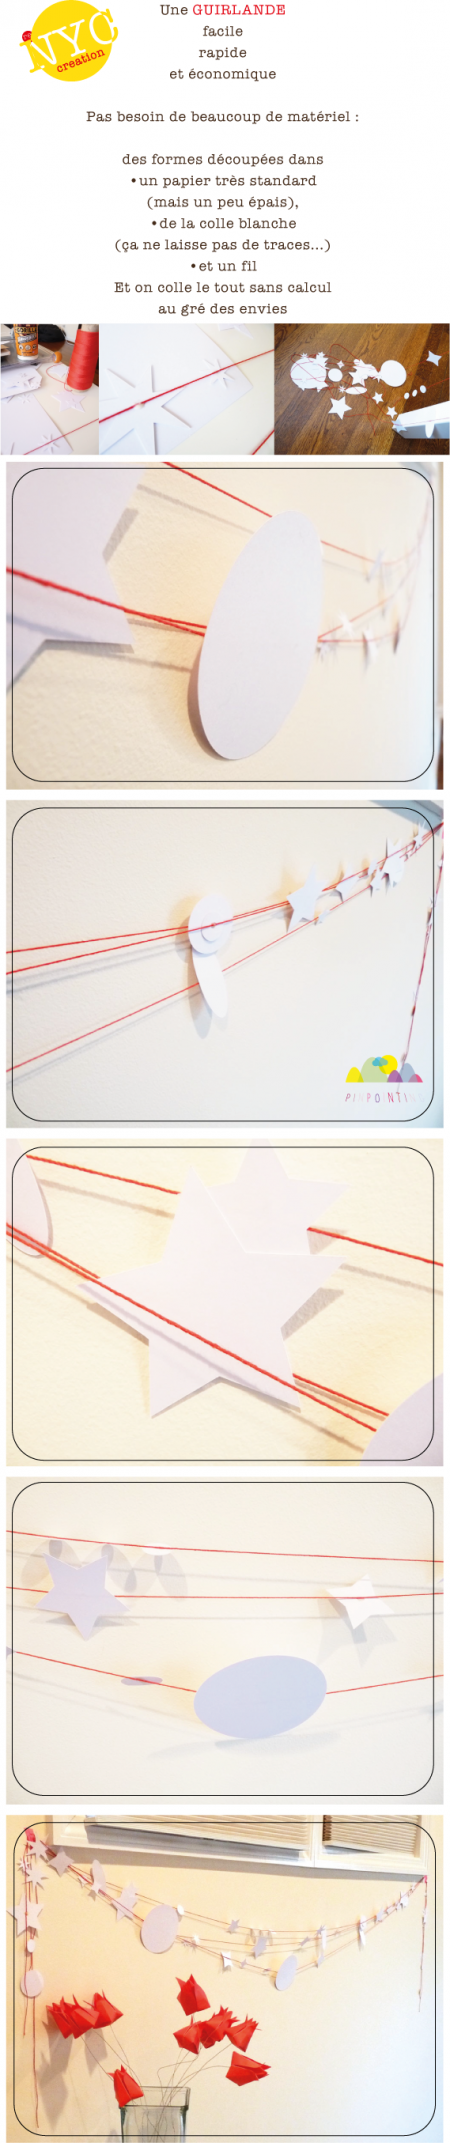 guirlande, papier, décor, diy, pinpointing, facile